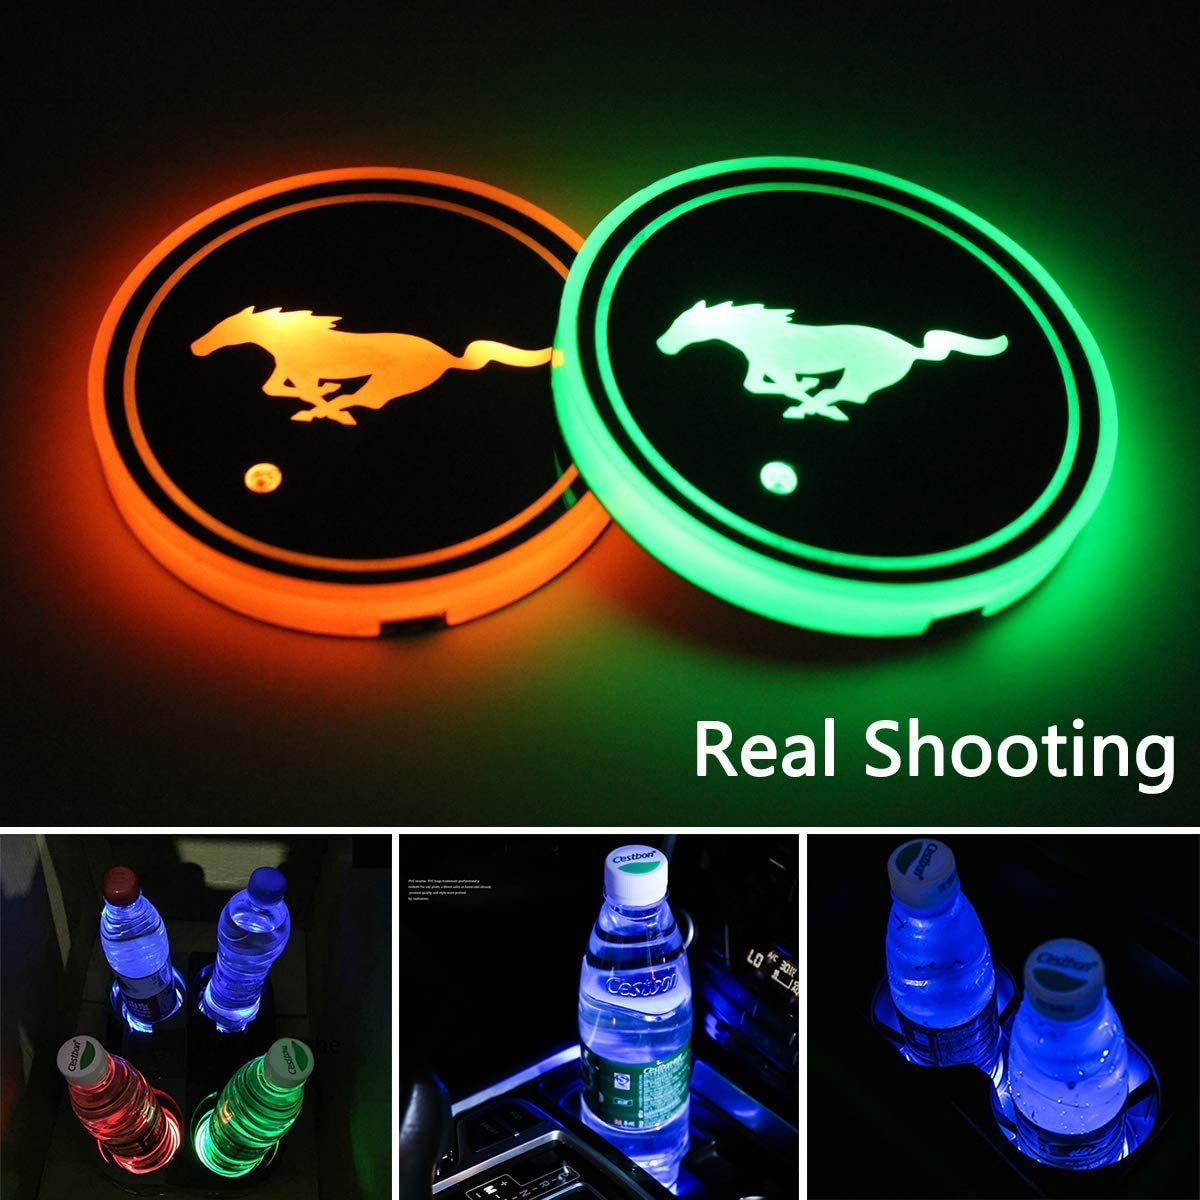 2 PCS Interior Accessories Coaster with 7 Colors Changing USB Charging Mat Luminescent Cup Pad YOJOHUA 2.75 Inch LED Car Cup Holder Lights for Mustang Atmosphere Lamp Decoration Light